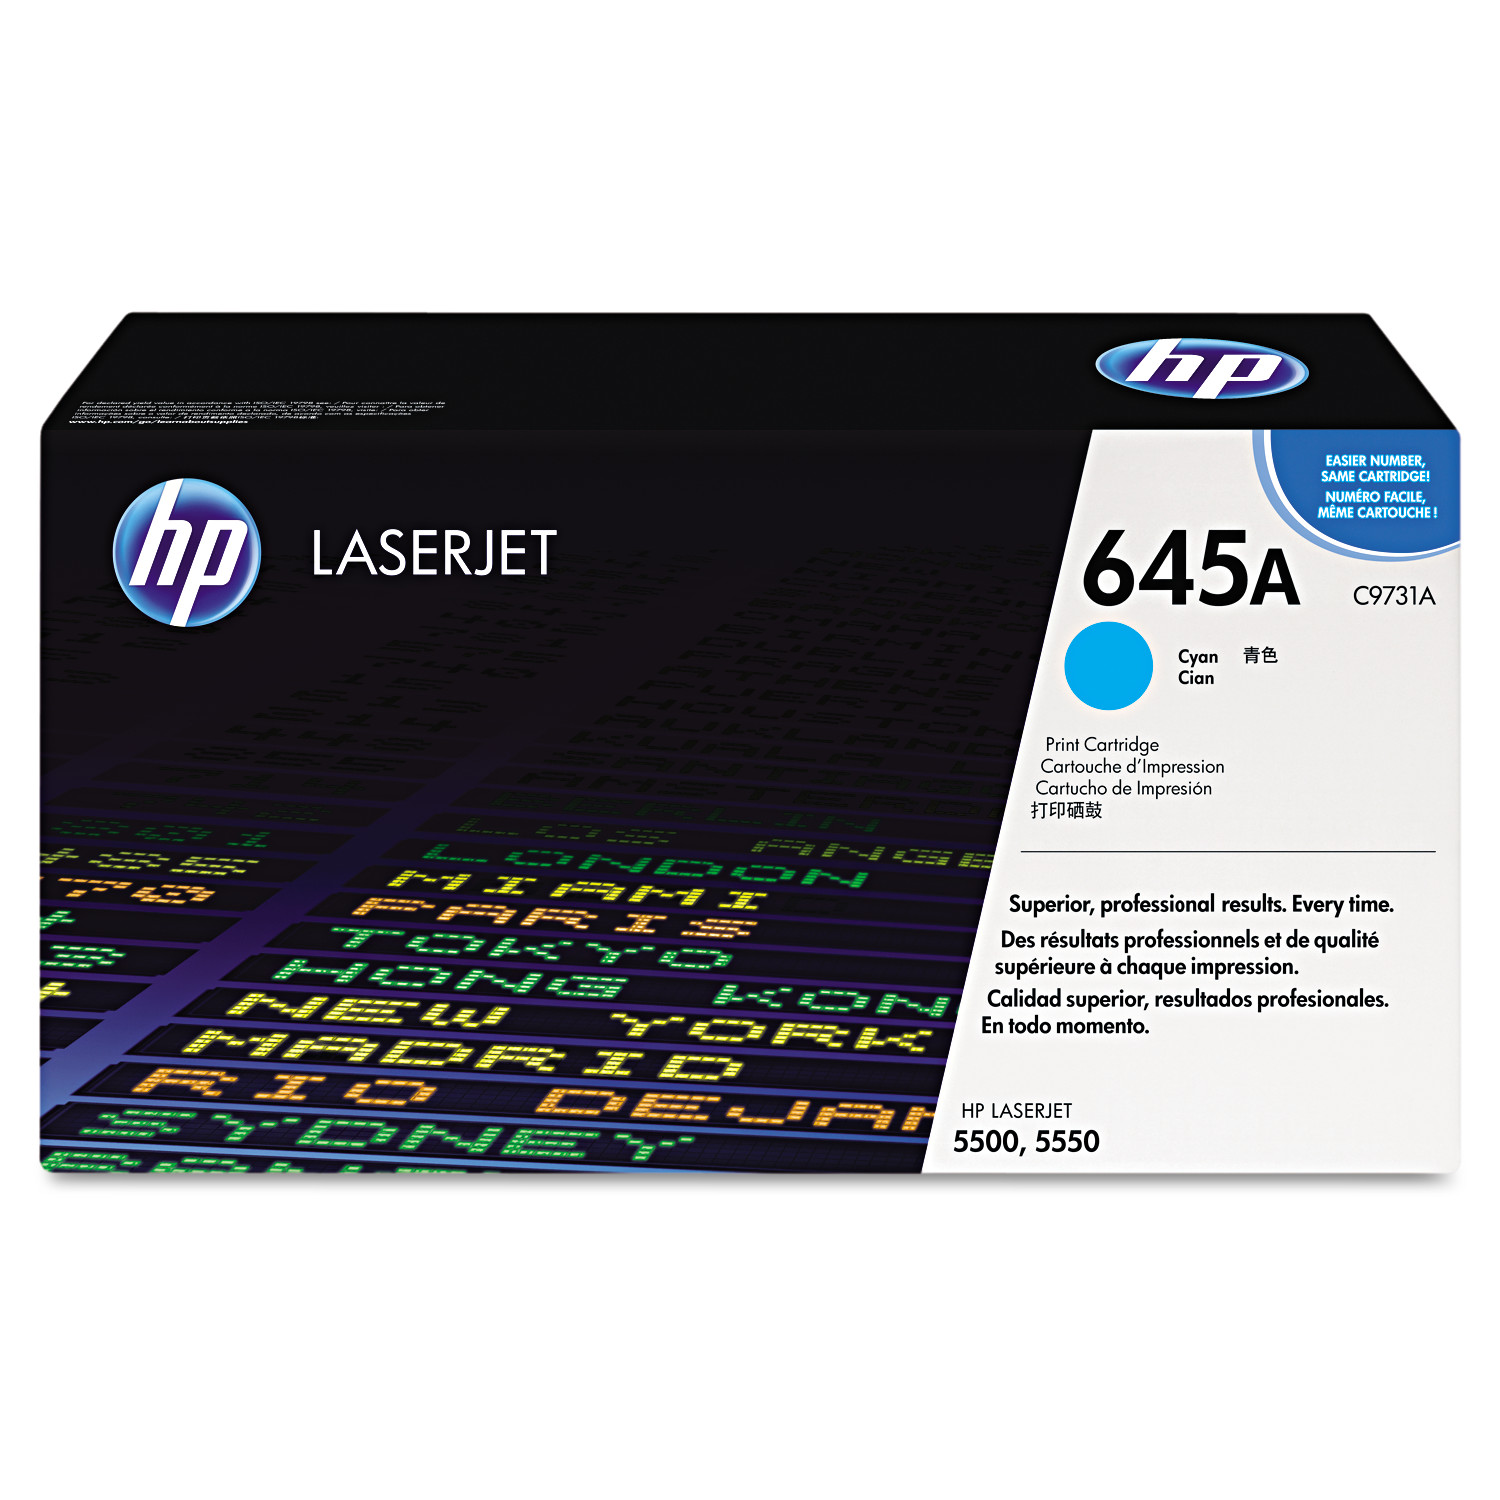 C9730 31 32 33A Toner Cartridges by HP